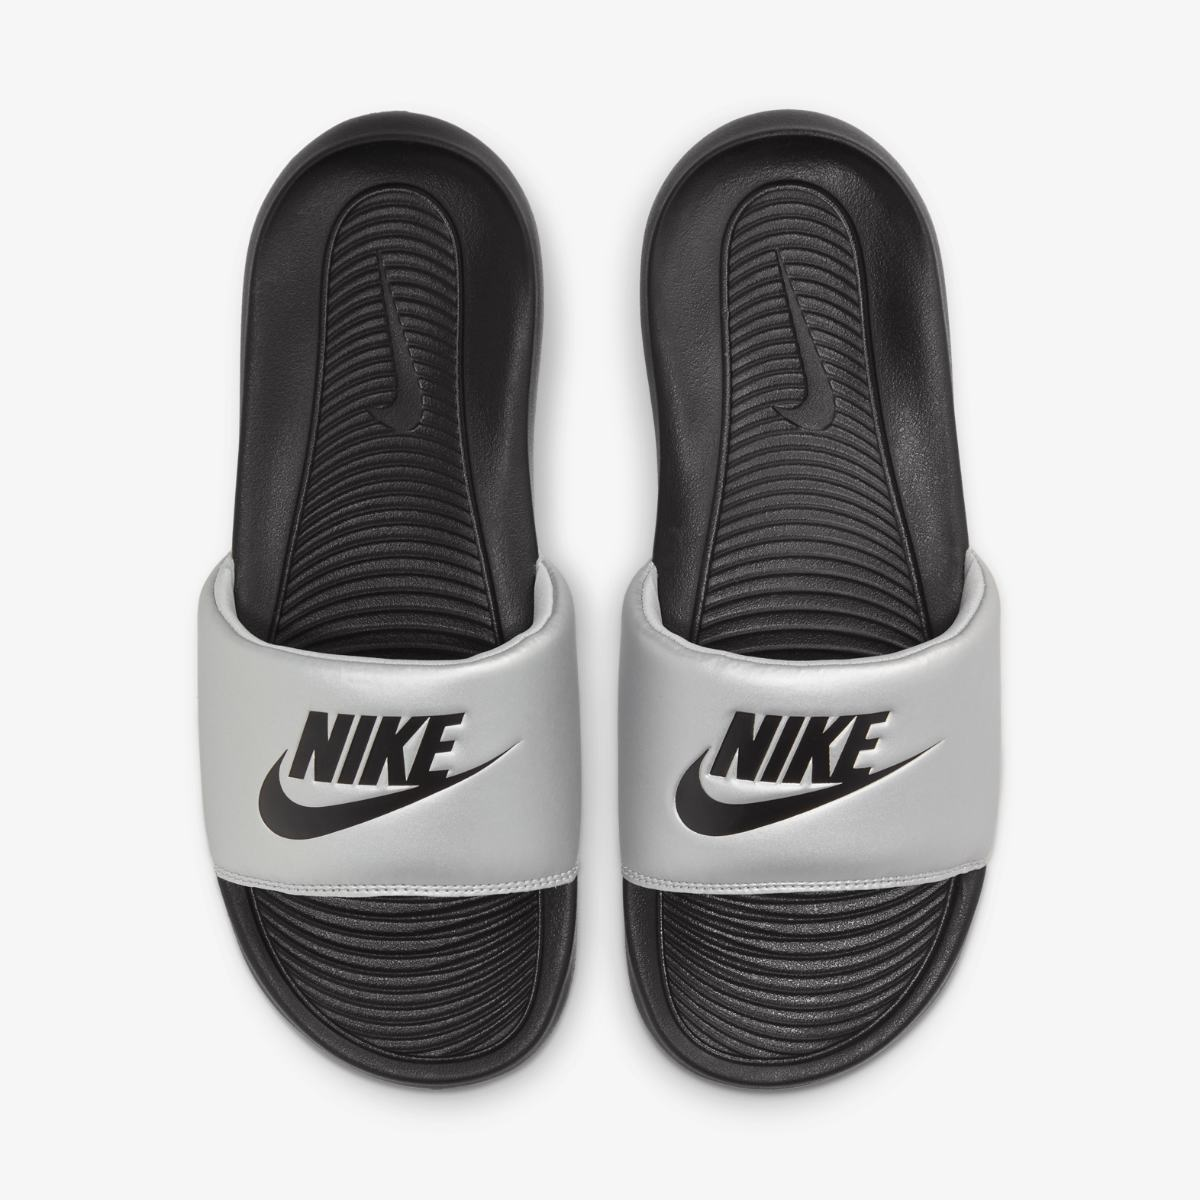 Тапочки NIKE W VICTORI ONE NN SLIDE